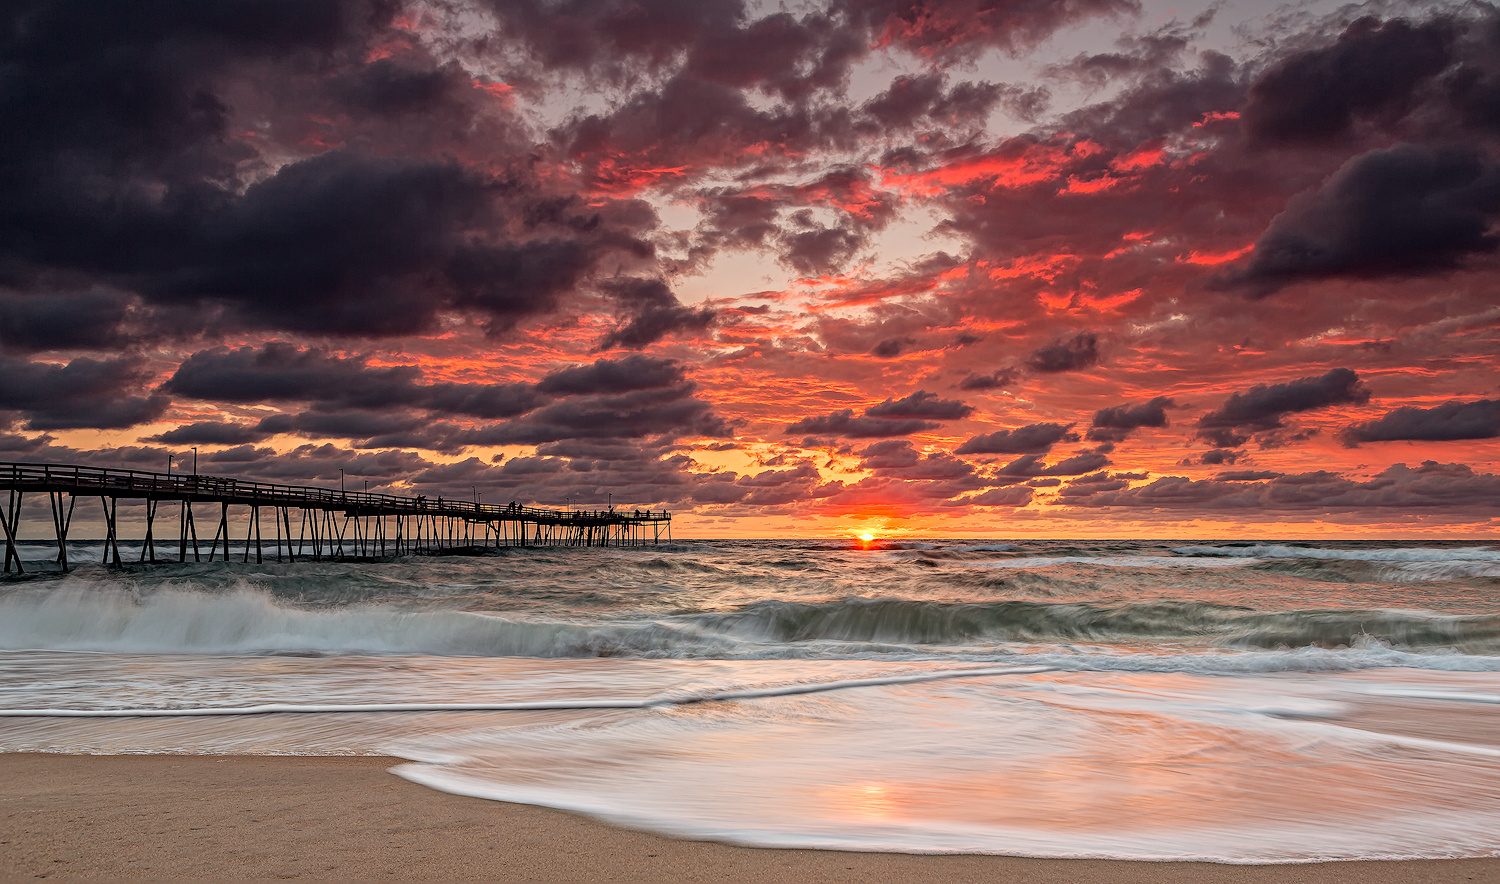 Fire in the Sky | Outer Banks, NC by Jarrod Bruner